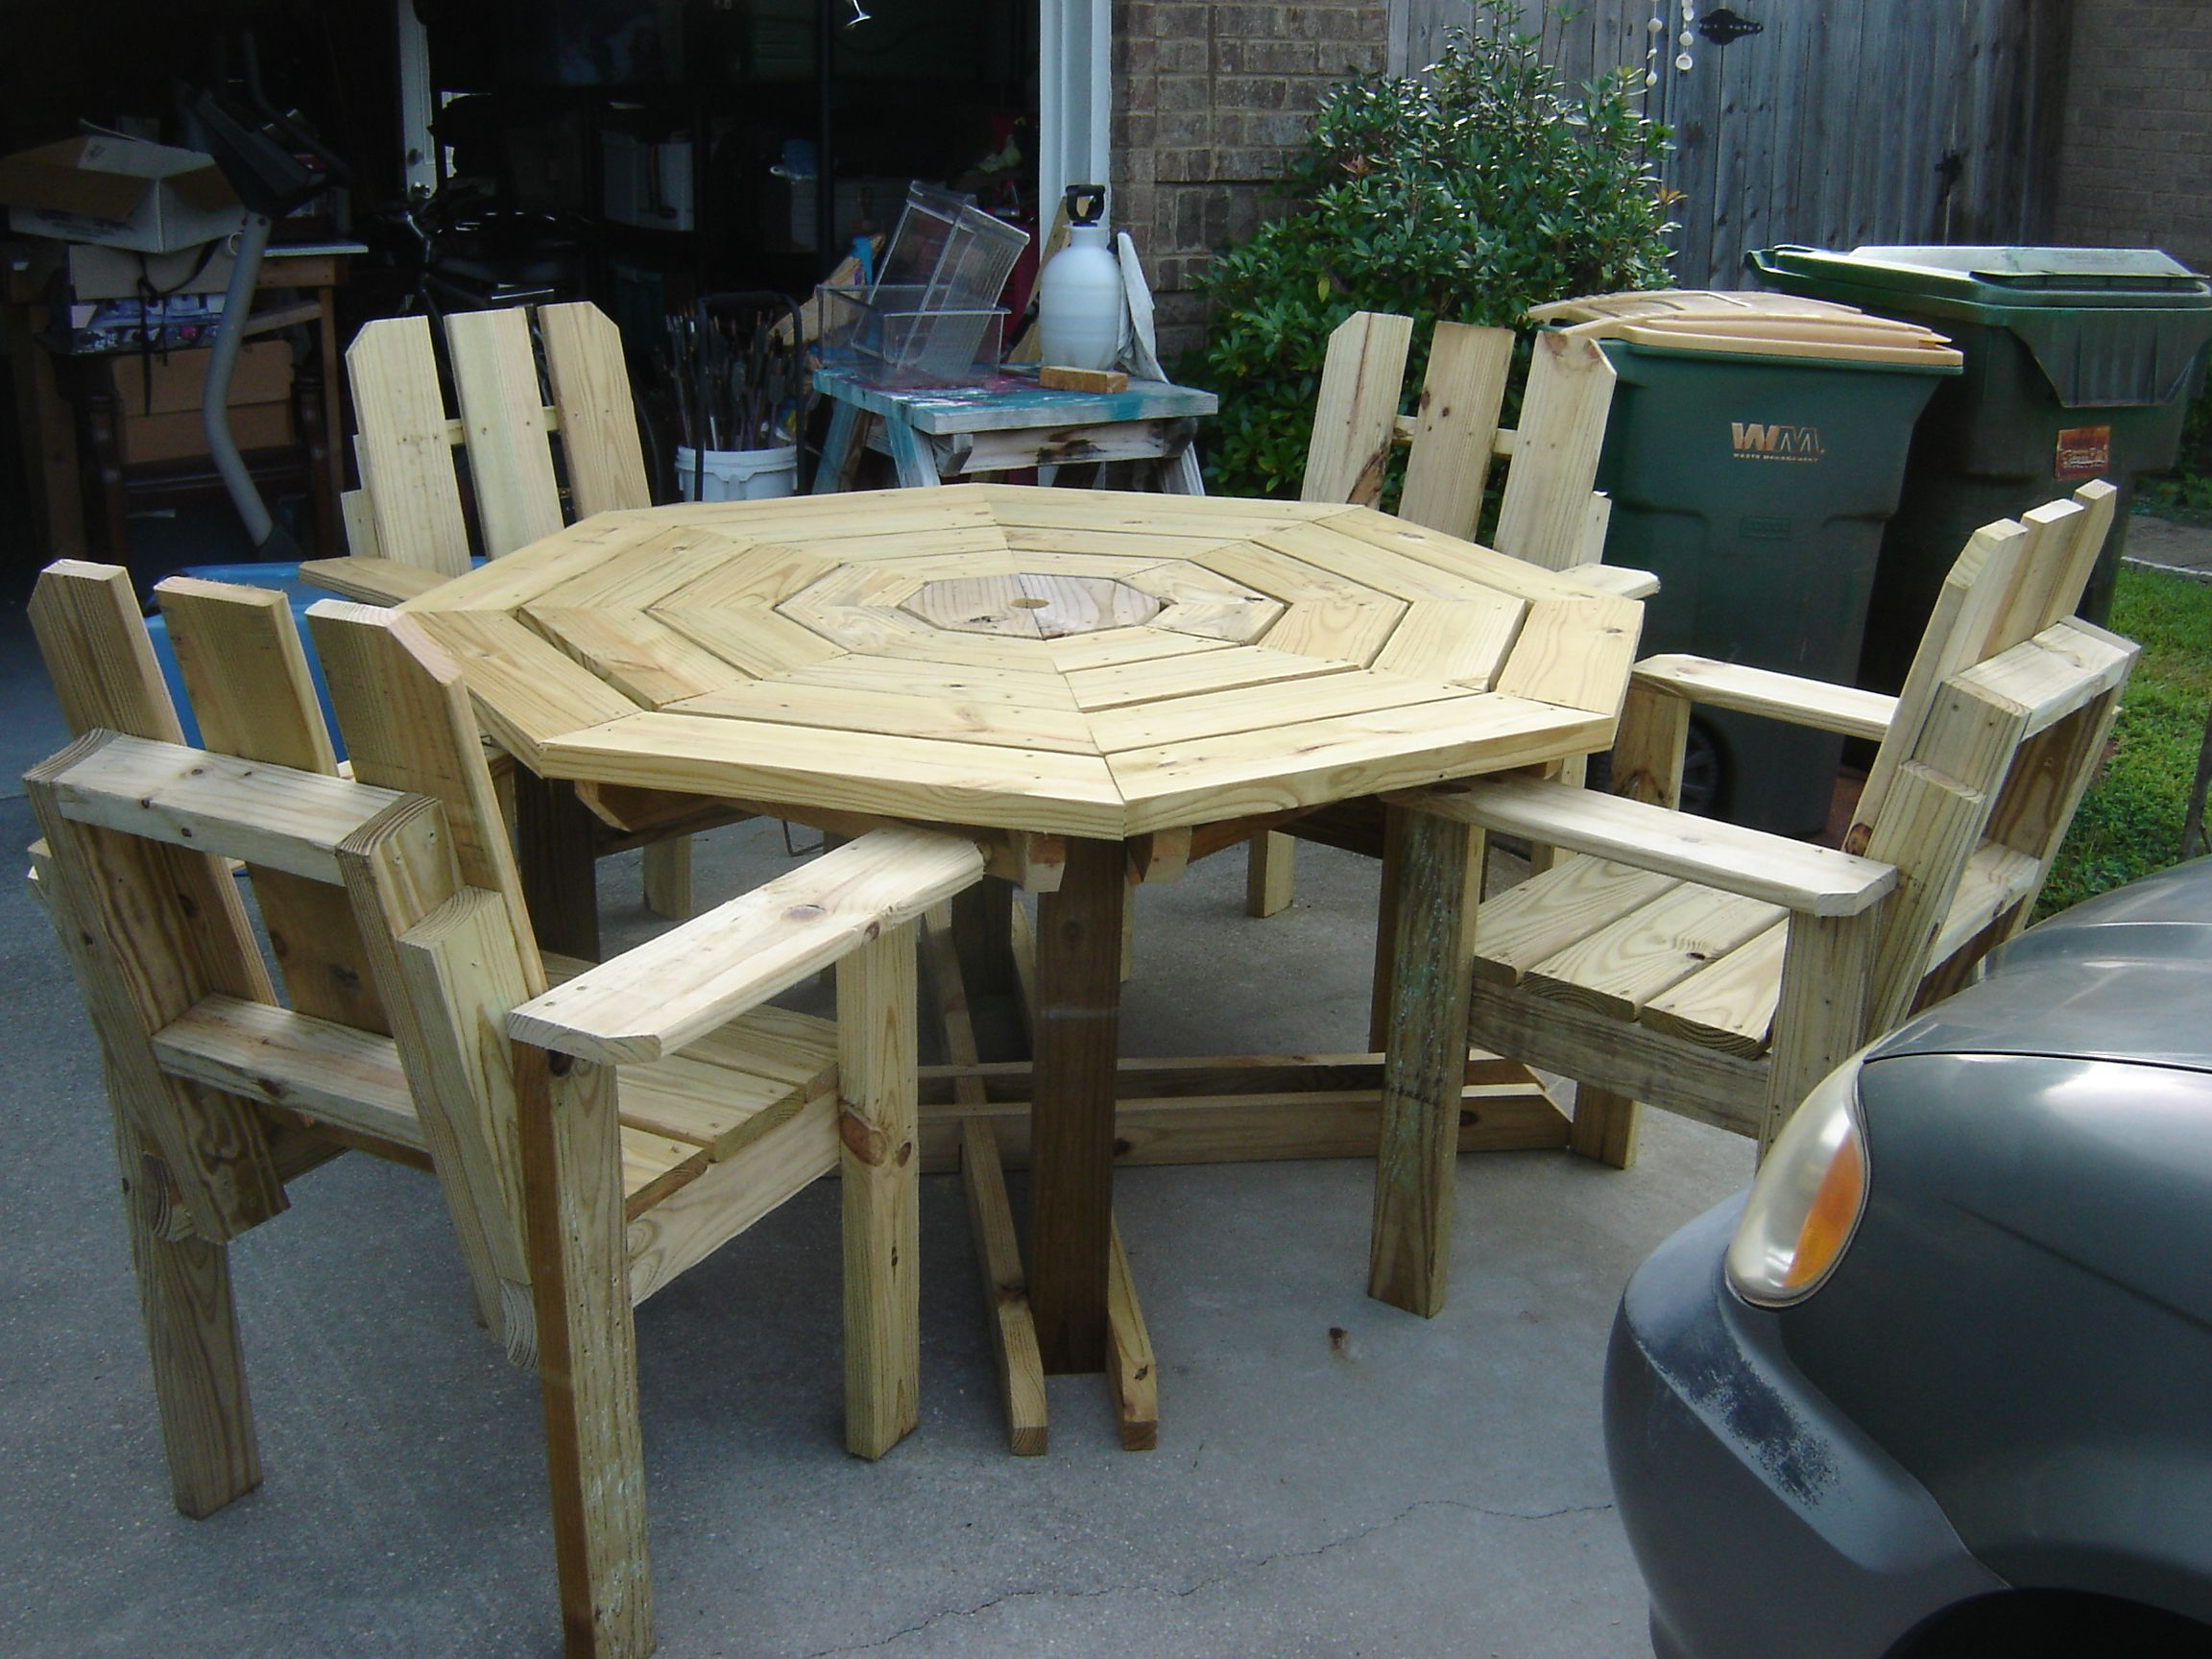 Regular Height Octagon Table With Chairs